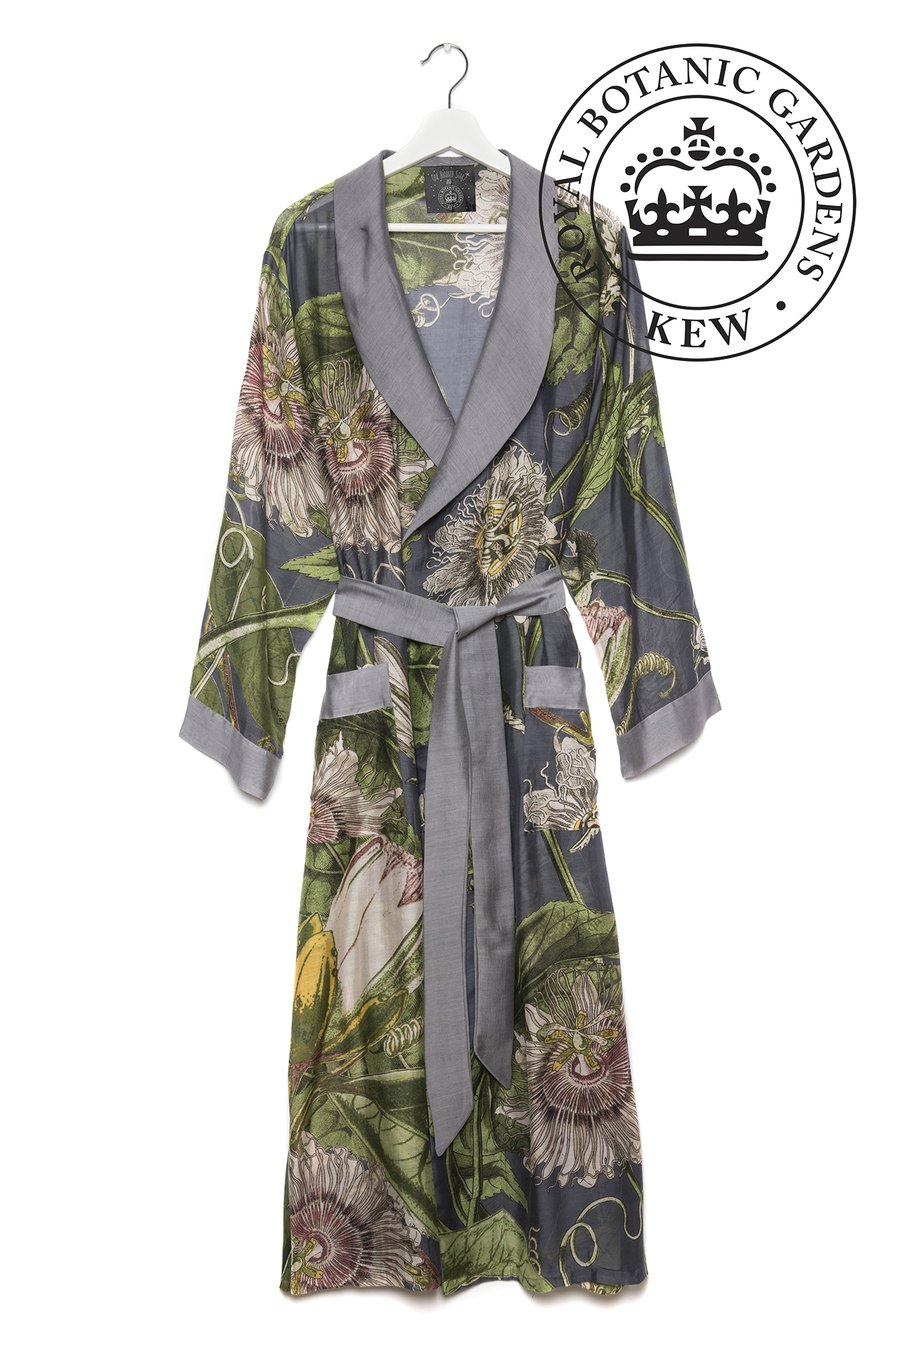 OHS & KEW RBG Passion Flower Grey Gown